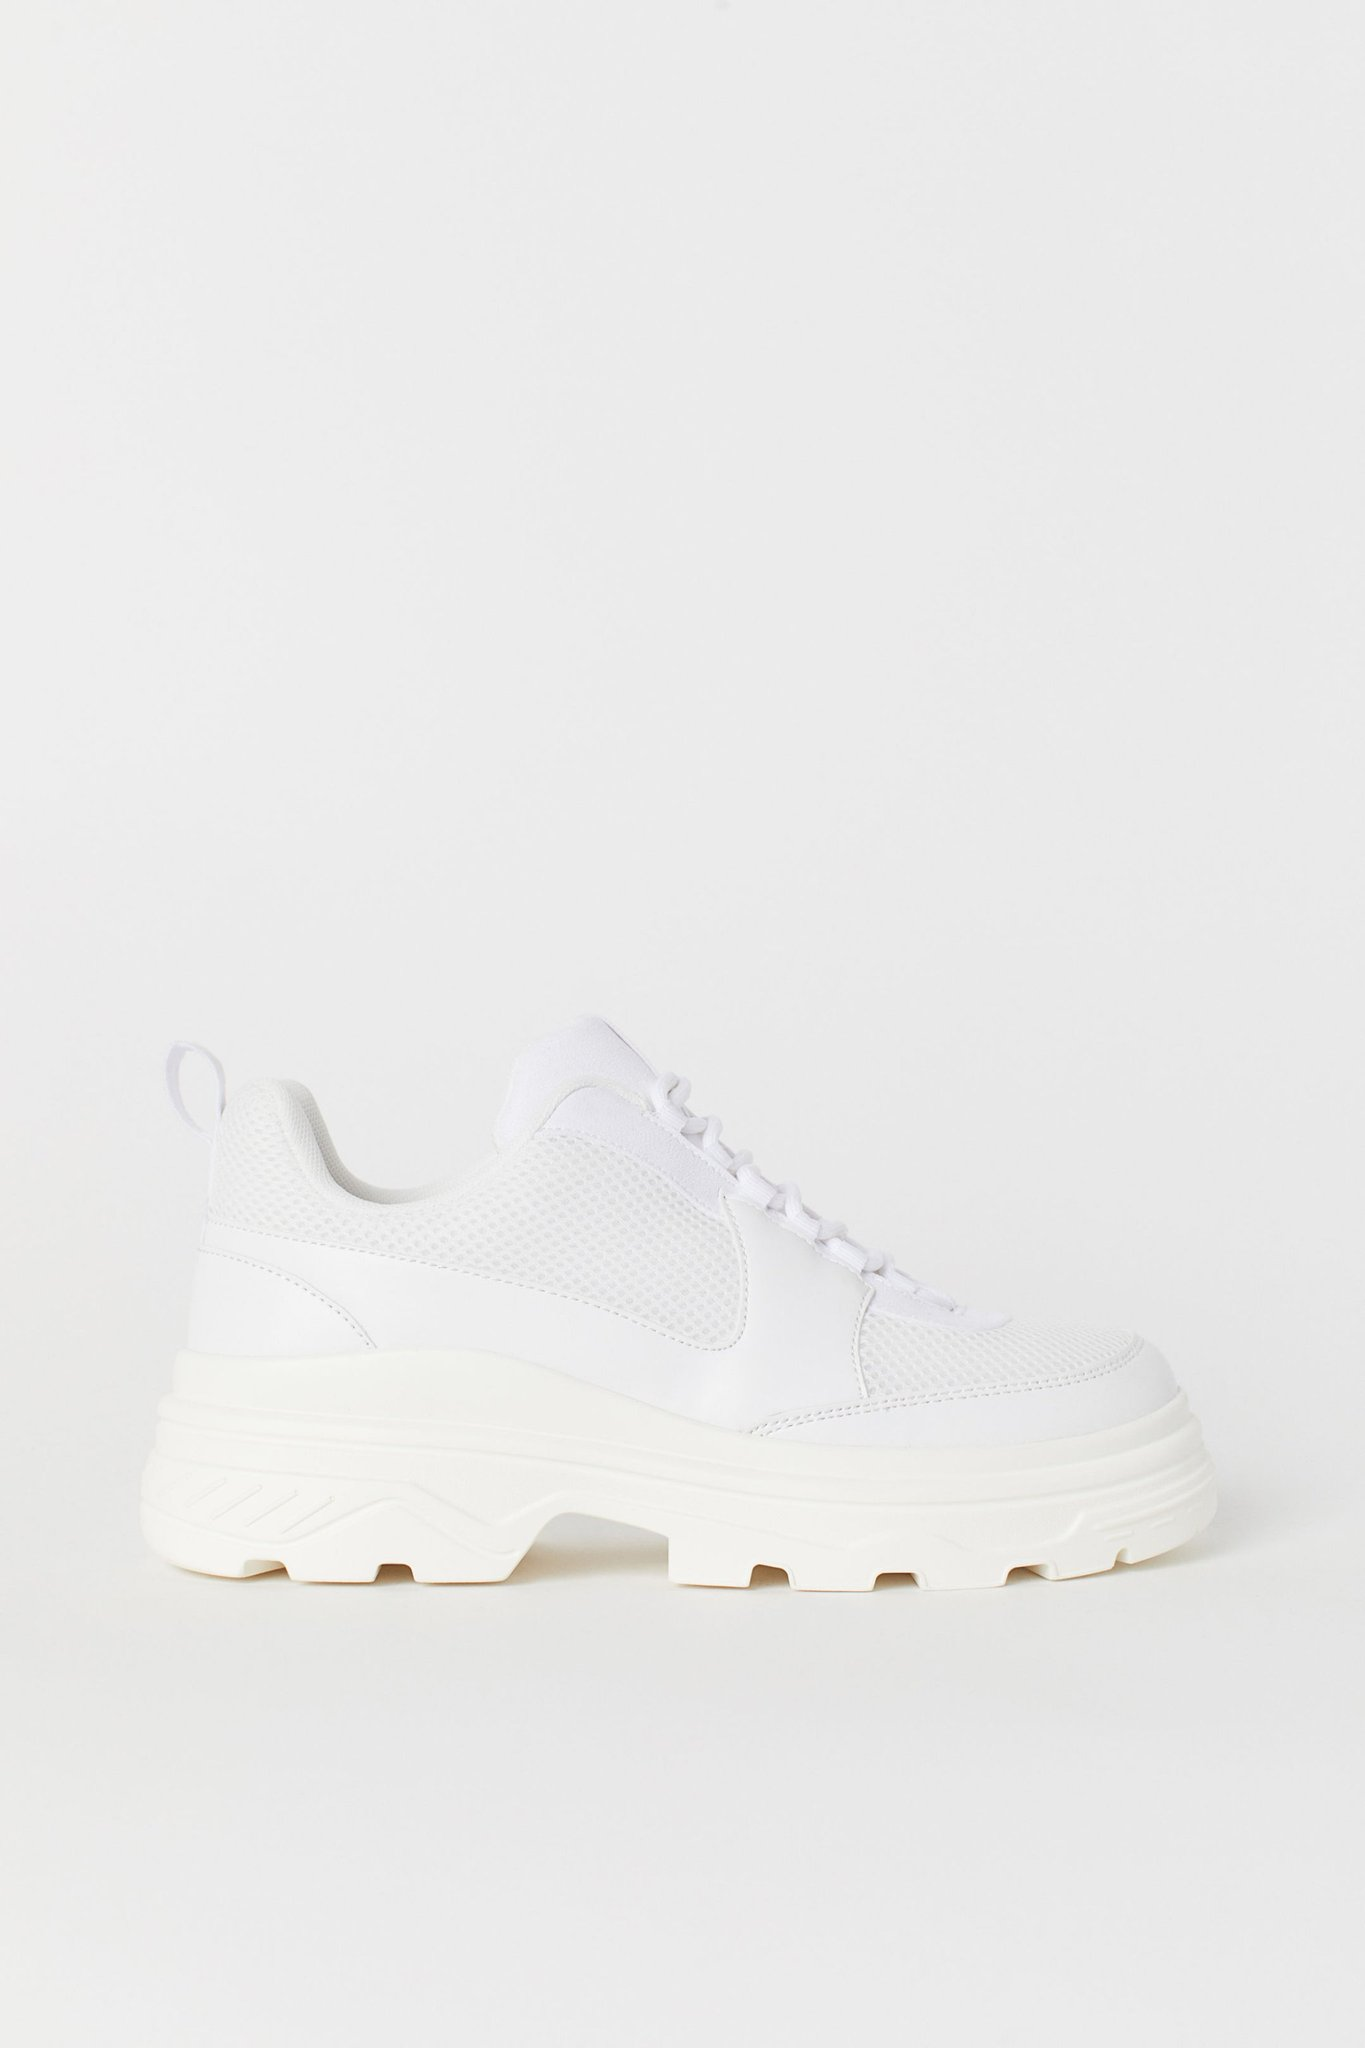 helt nya chunky sneakers h&m hm divided vita 38.. (360223766